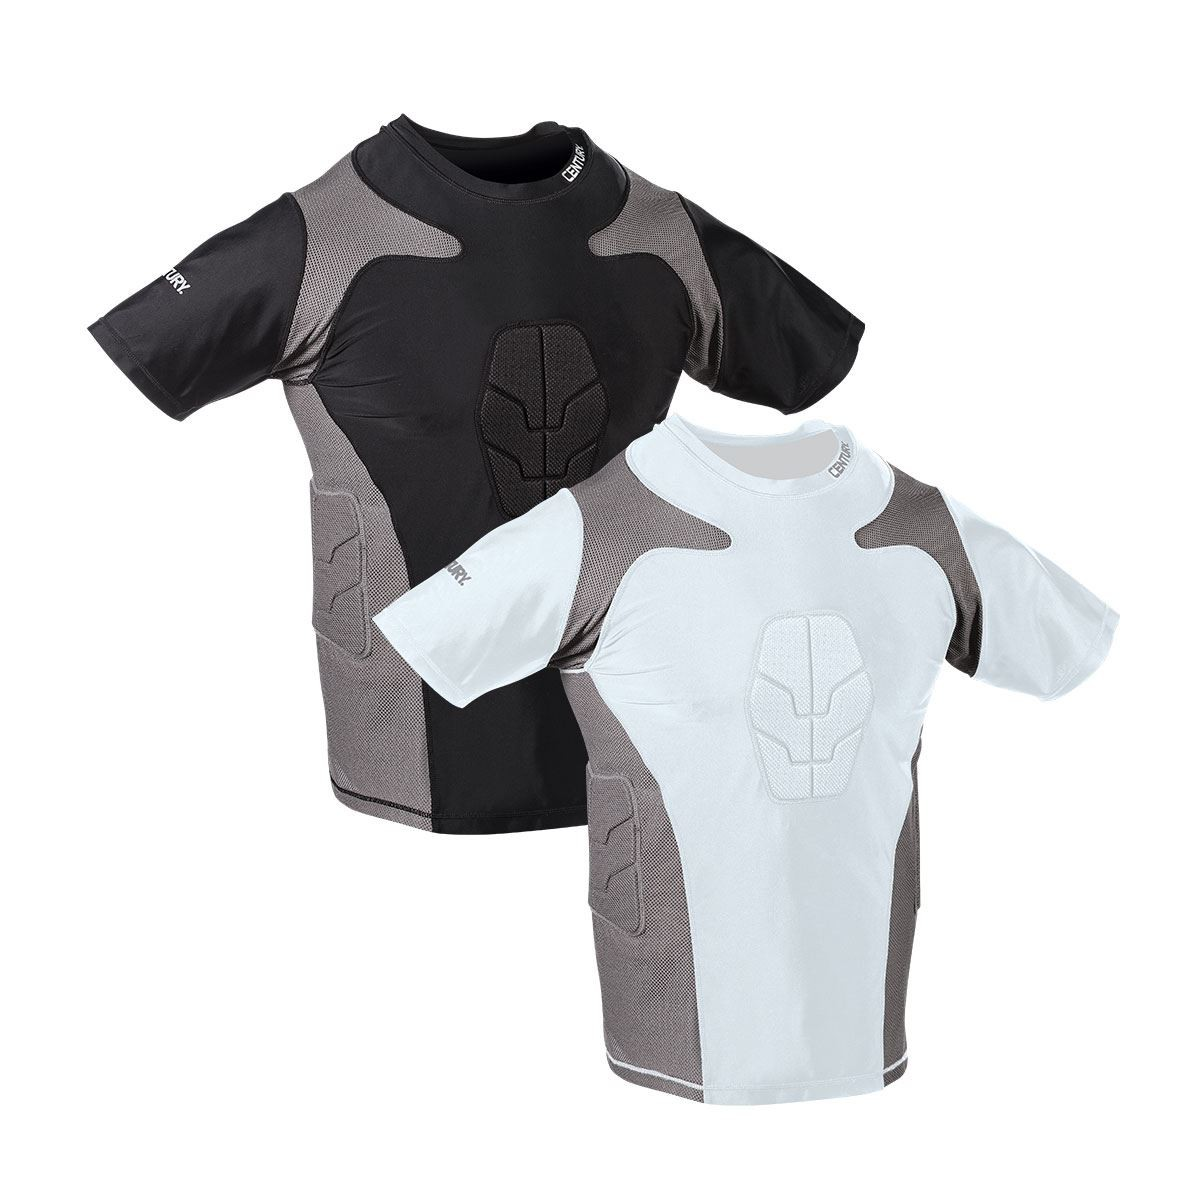 Martial Arts Short Sleeve Padded Compression Shirts - Youth